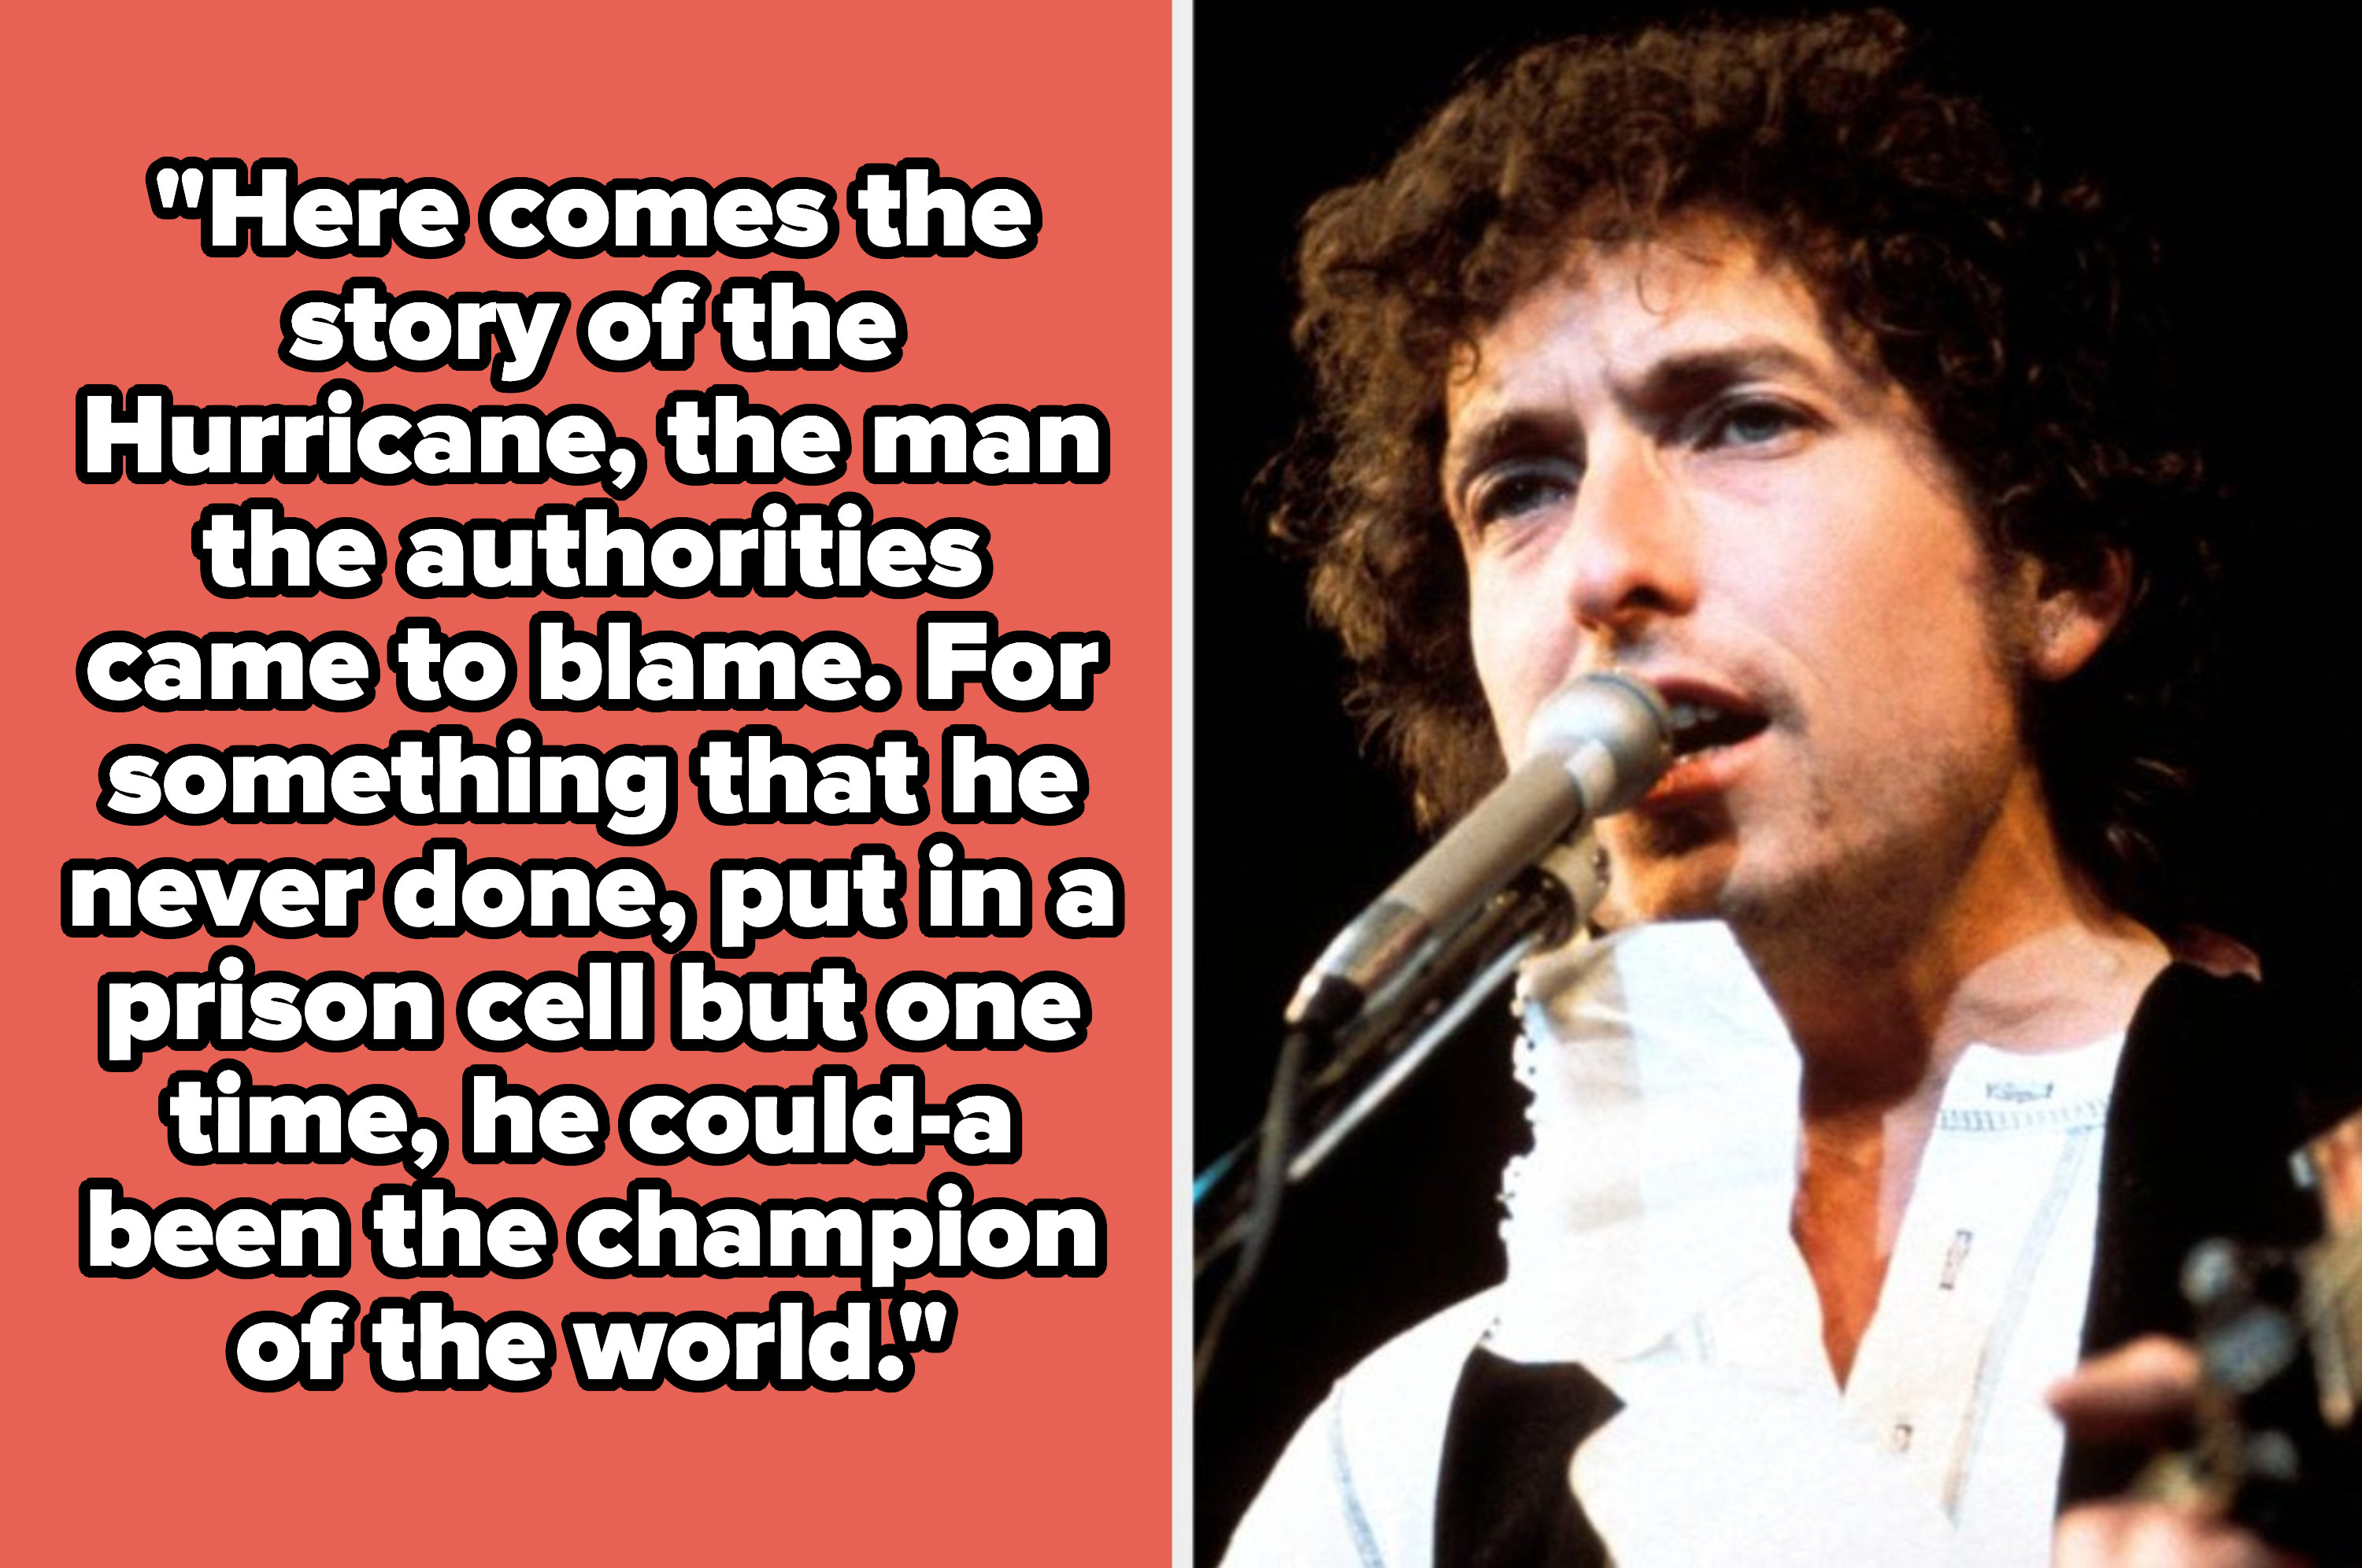 """Bob Dylan lyrics: """"""""Here comes the story of the Hurricane, the man the authorities came to blame. For something that he never done, put in a prison cell but one time, he could-a been the champion of the world"""""""